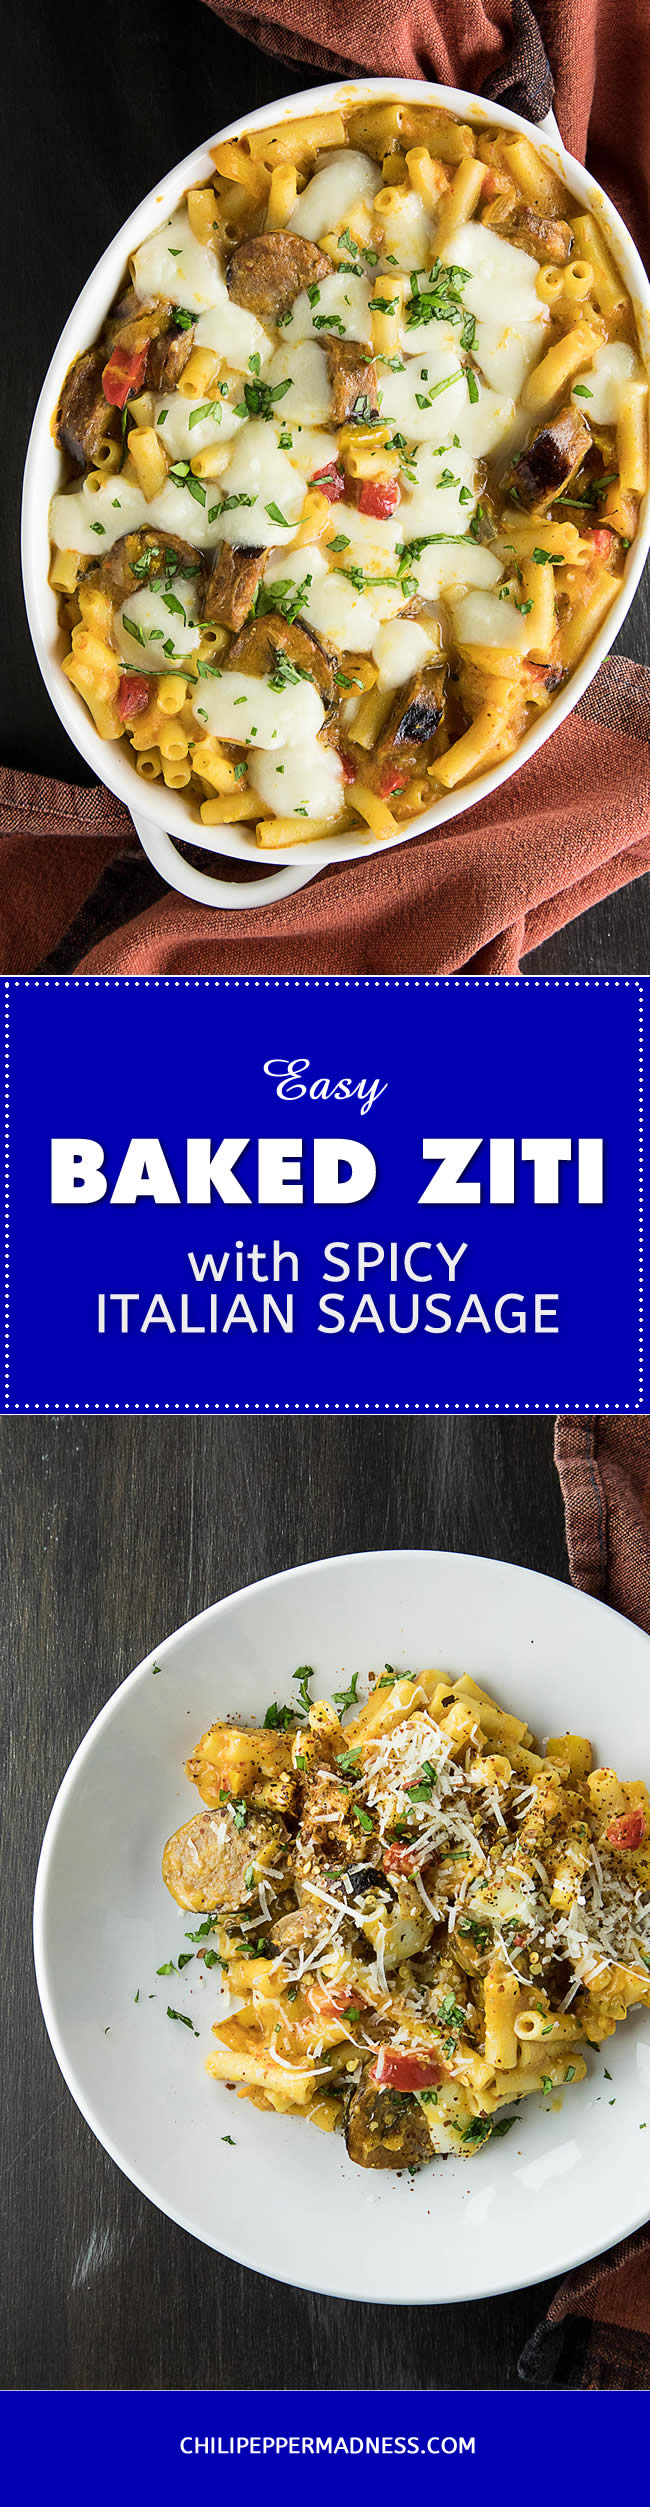 Easy Baked Ziti with Spicy Italian Sausage - Recipe